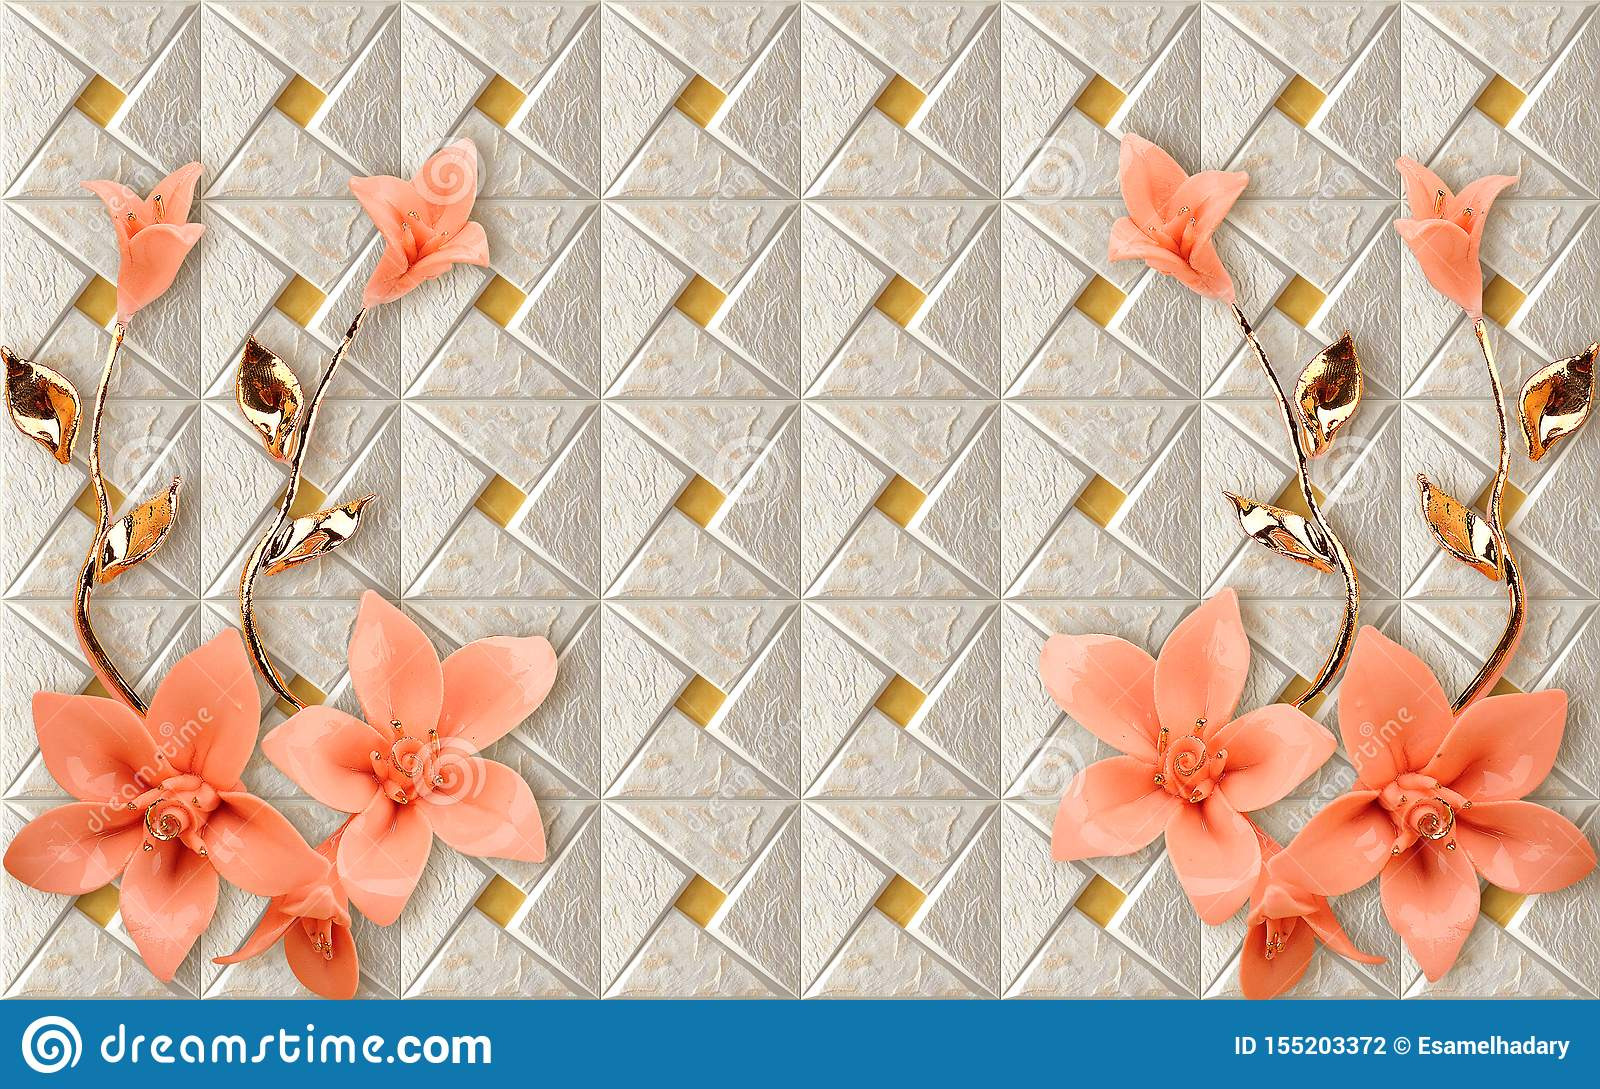 3d Wallpaper Mural Design With Floral And Geometric Golden Branch